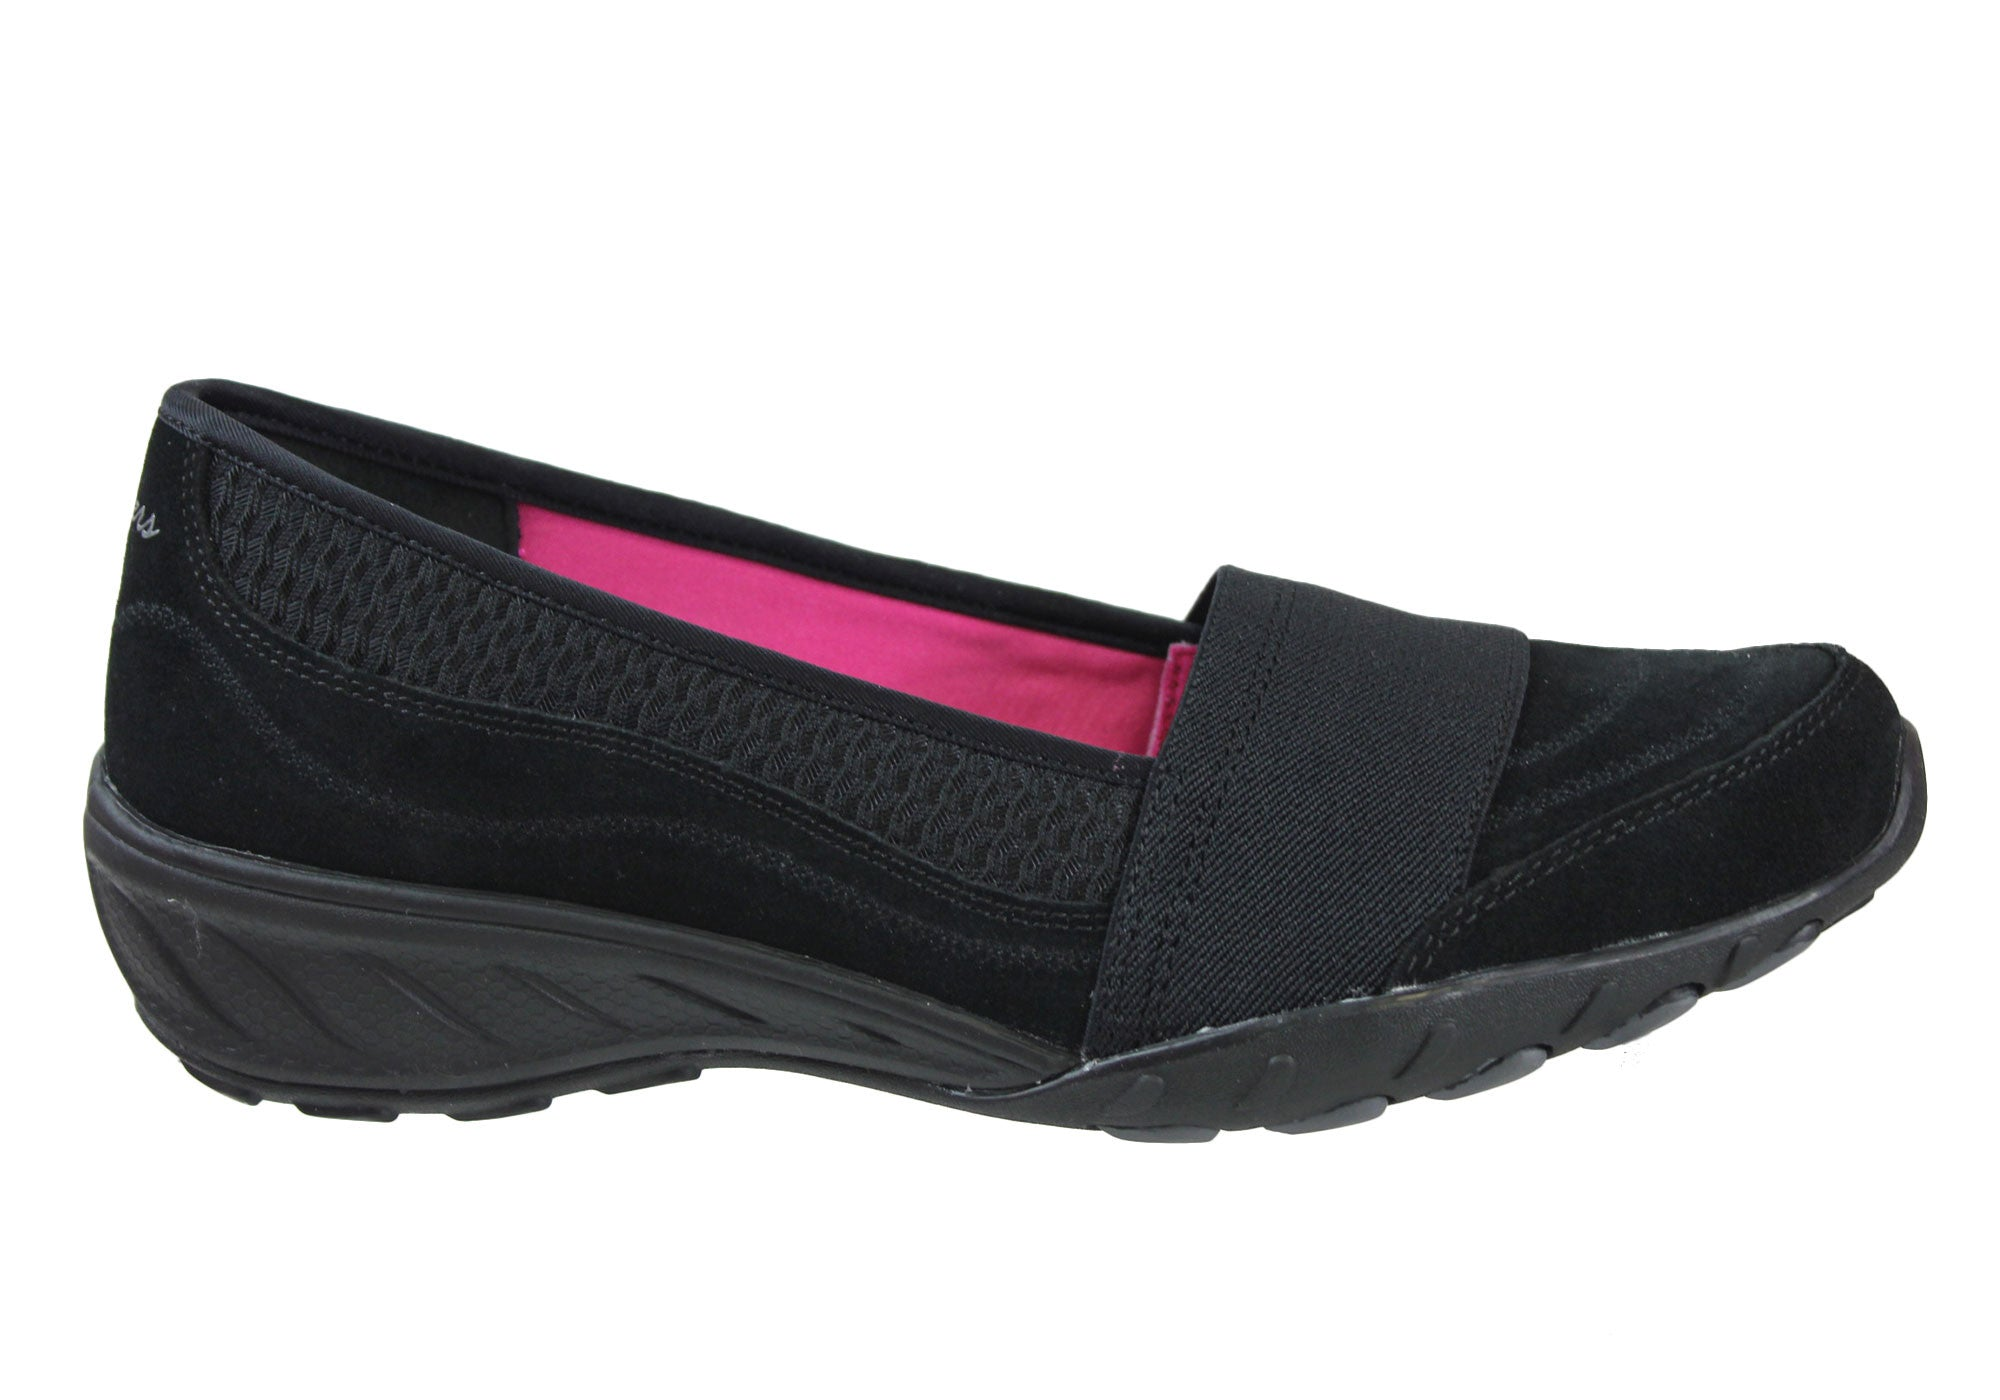 7e435b3736af Skechers Savvy Womens Relaxed Fit Memory Foam Casual Shoes 22907 ...